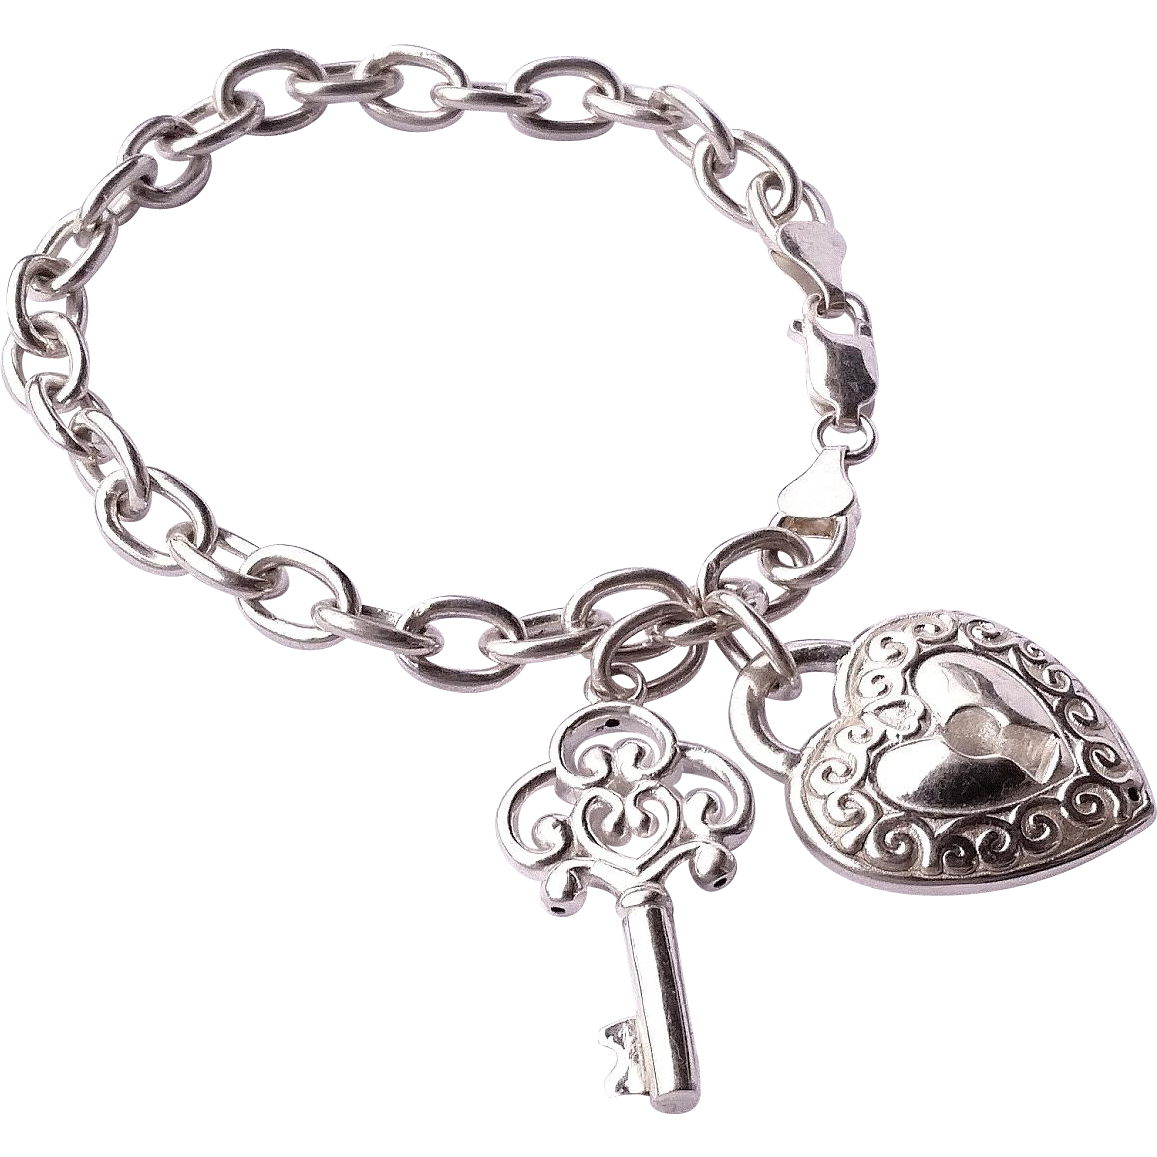 jcm mauritius 925 sterling silver lock and key